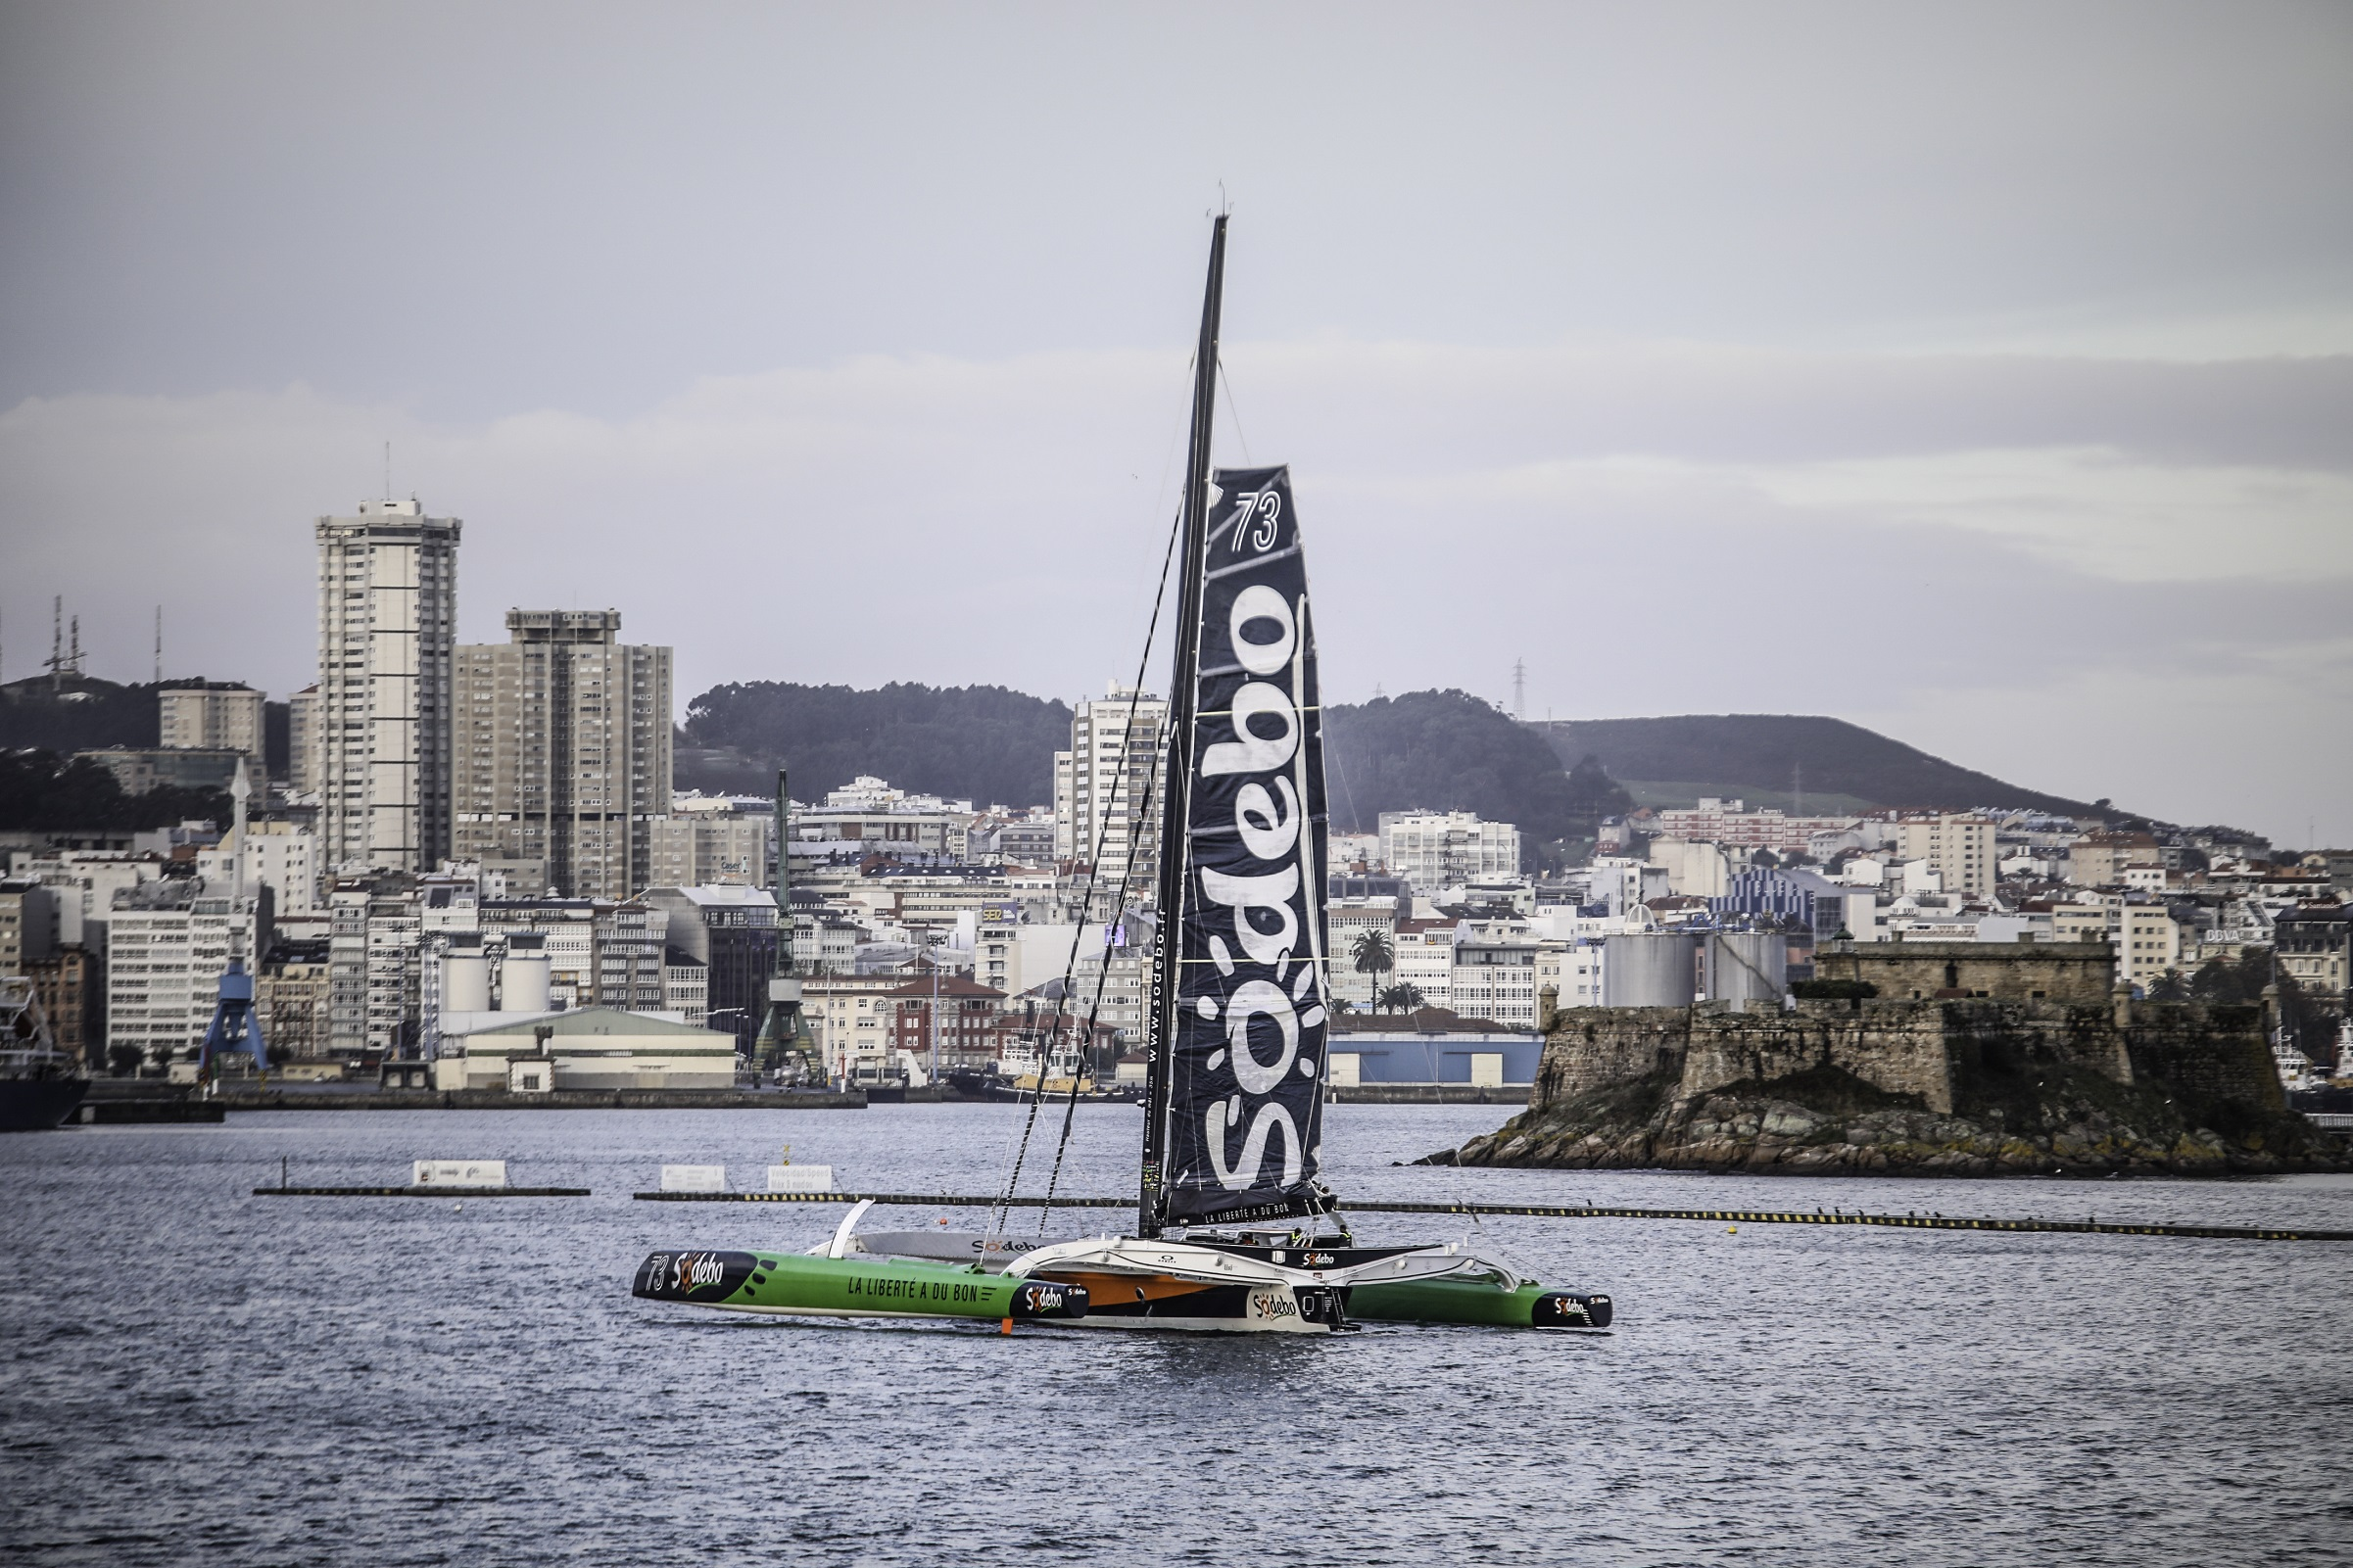 Sodebo Ultim' re-start from La Coruna in northern Spain where his boat was repaired. Fred Morin / Sodebo